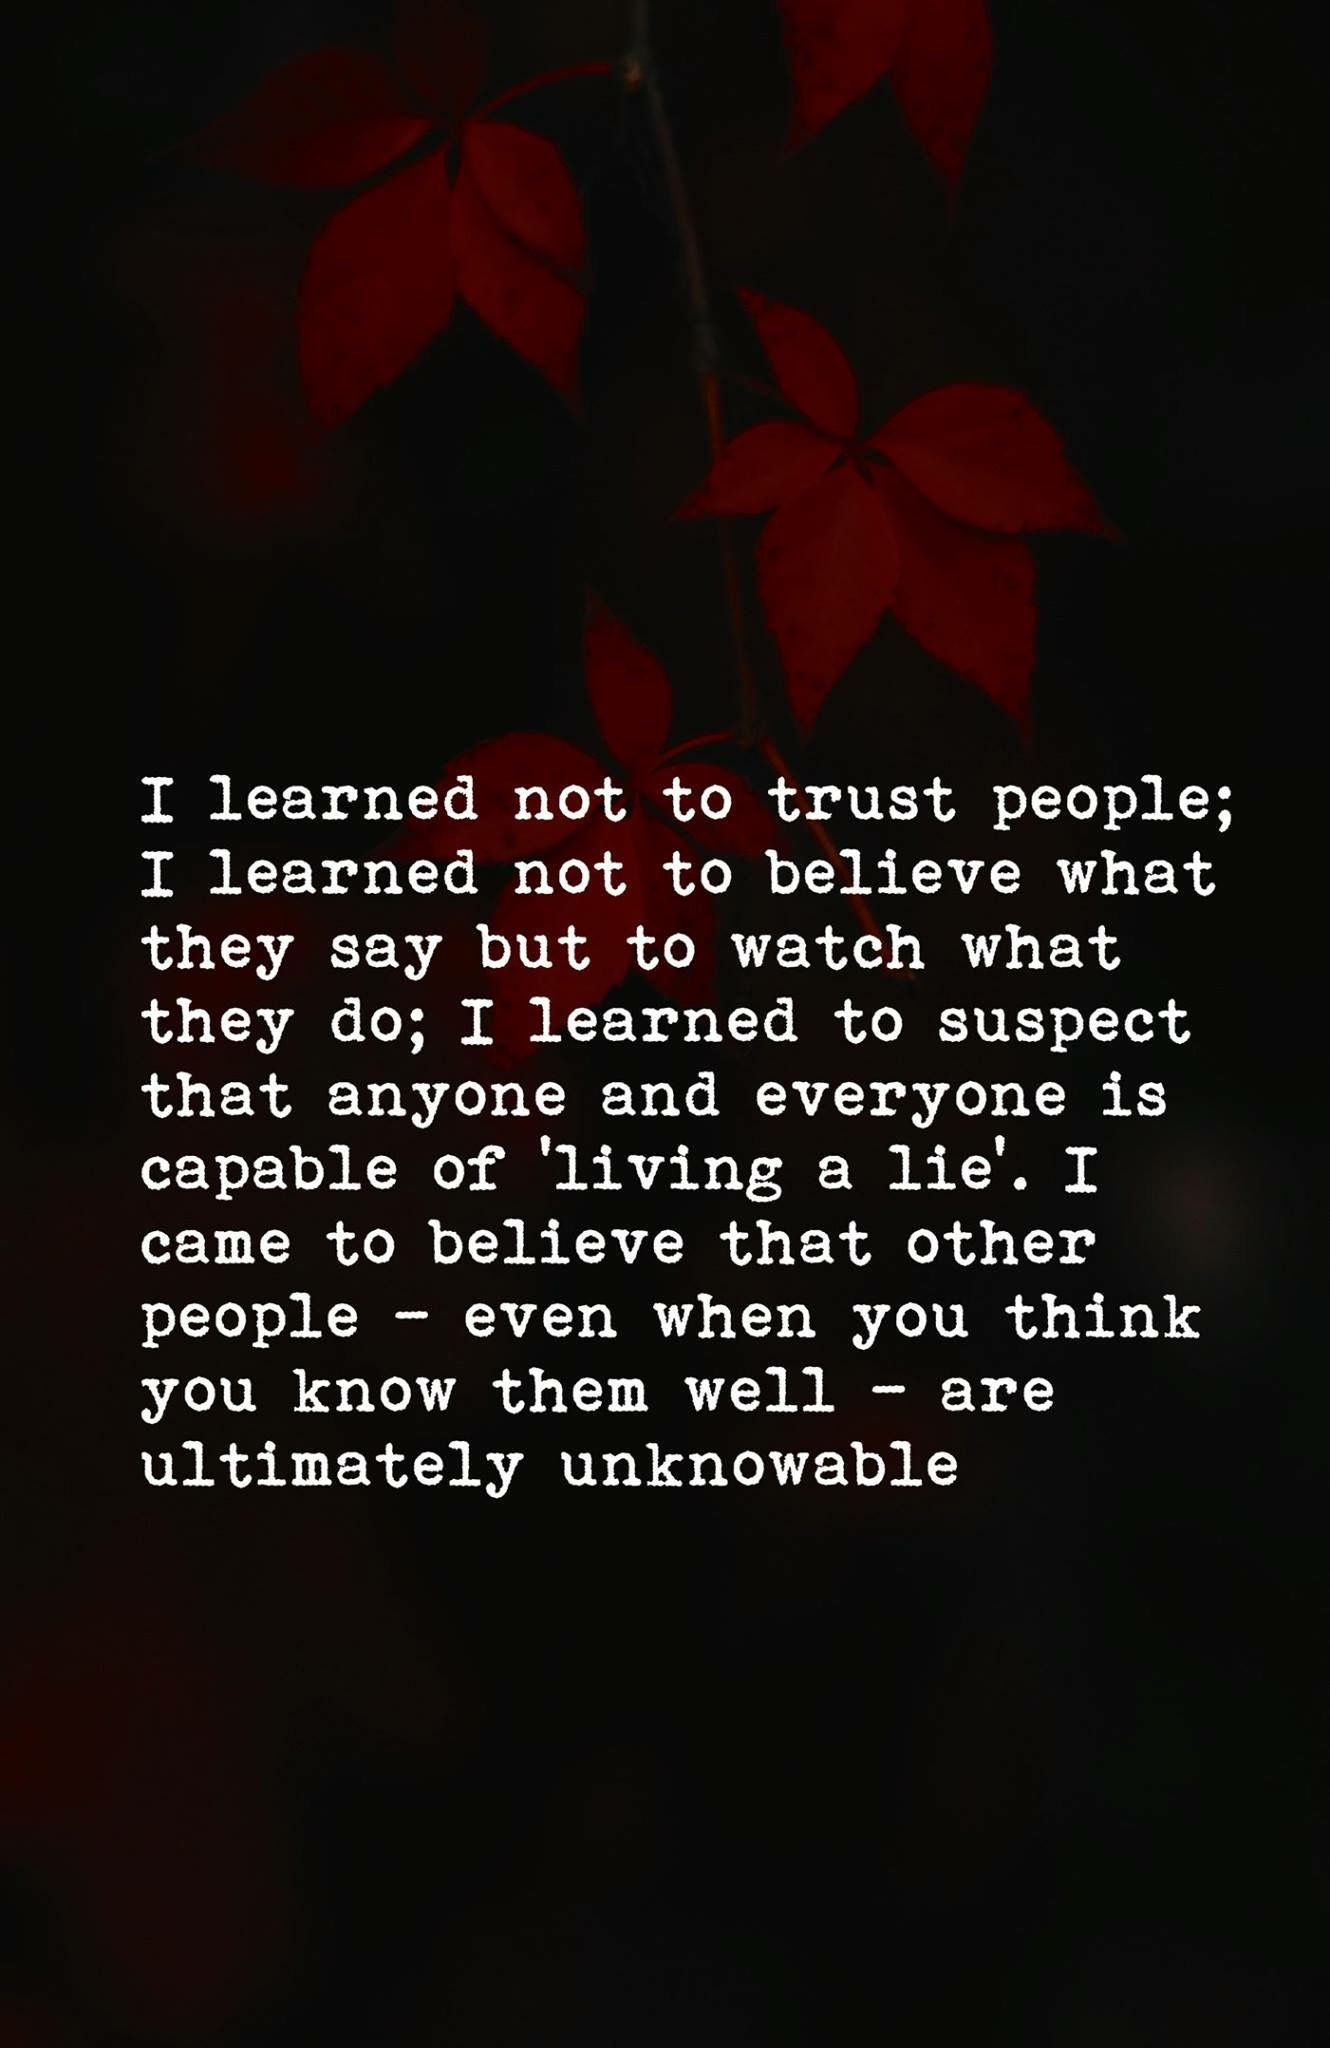 I don't trust anyone. Everyone's a liar and a faker to me | Poetry